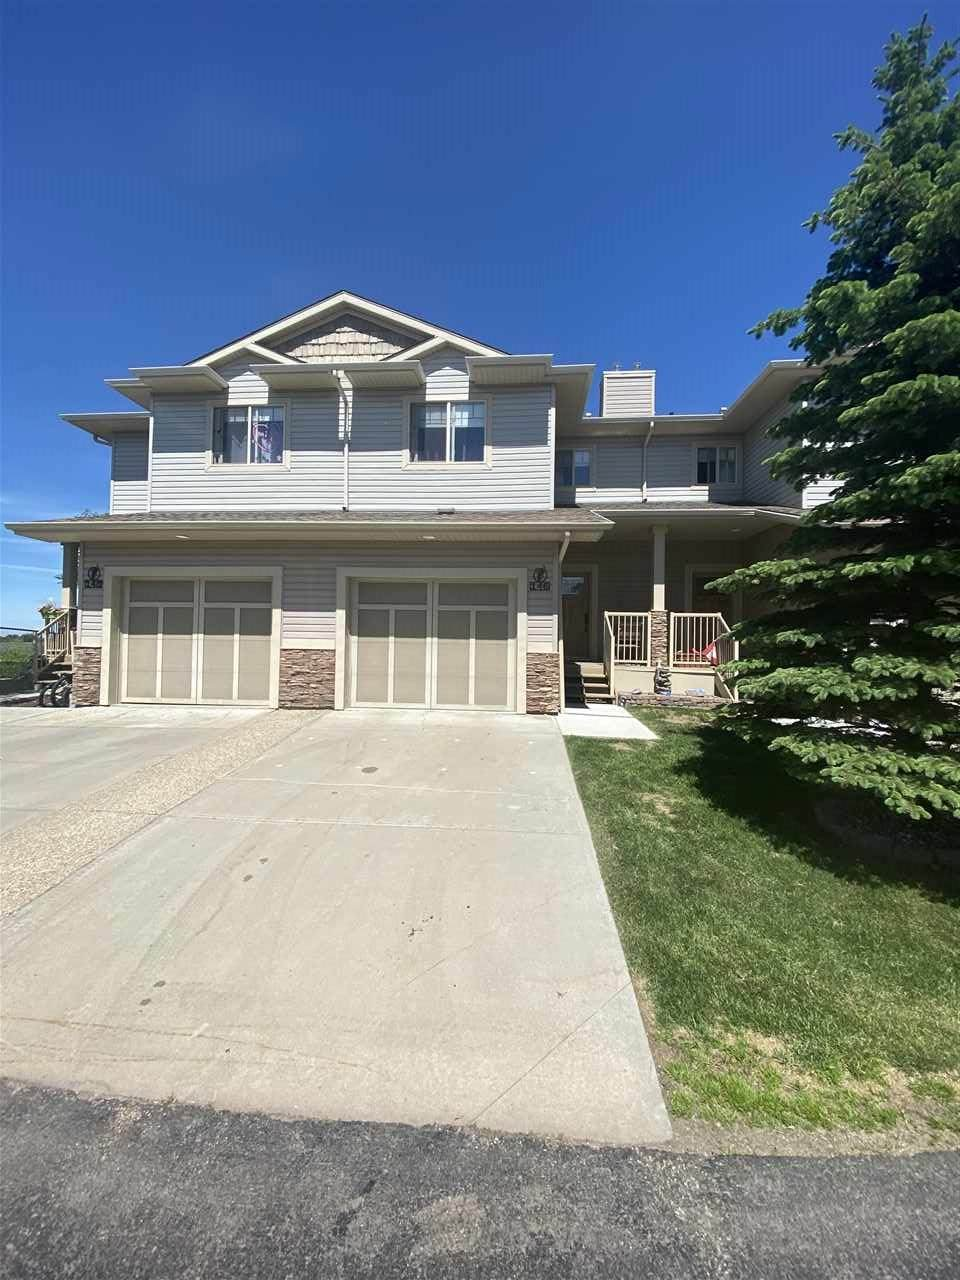 146 5420 Grant Macewan Boulevard - Photo 1